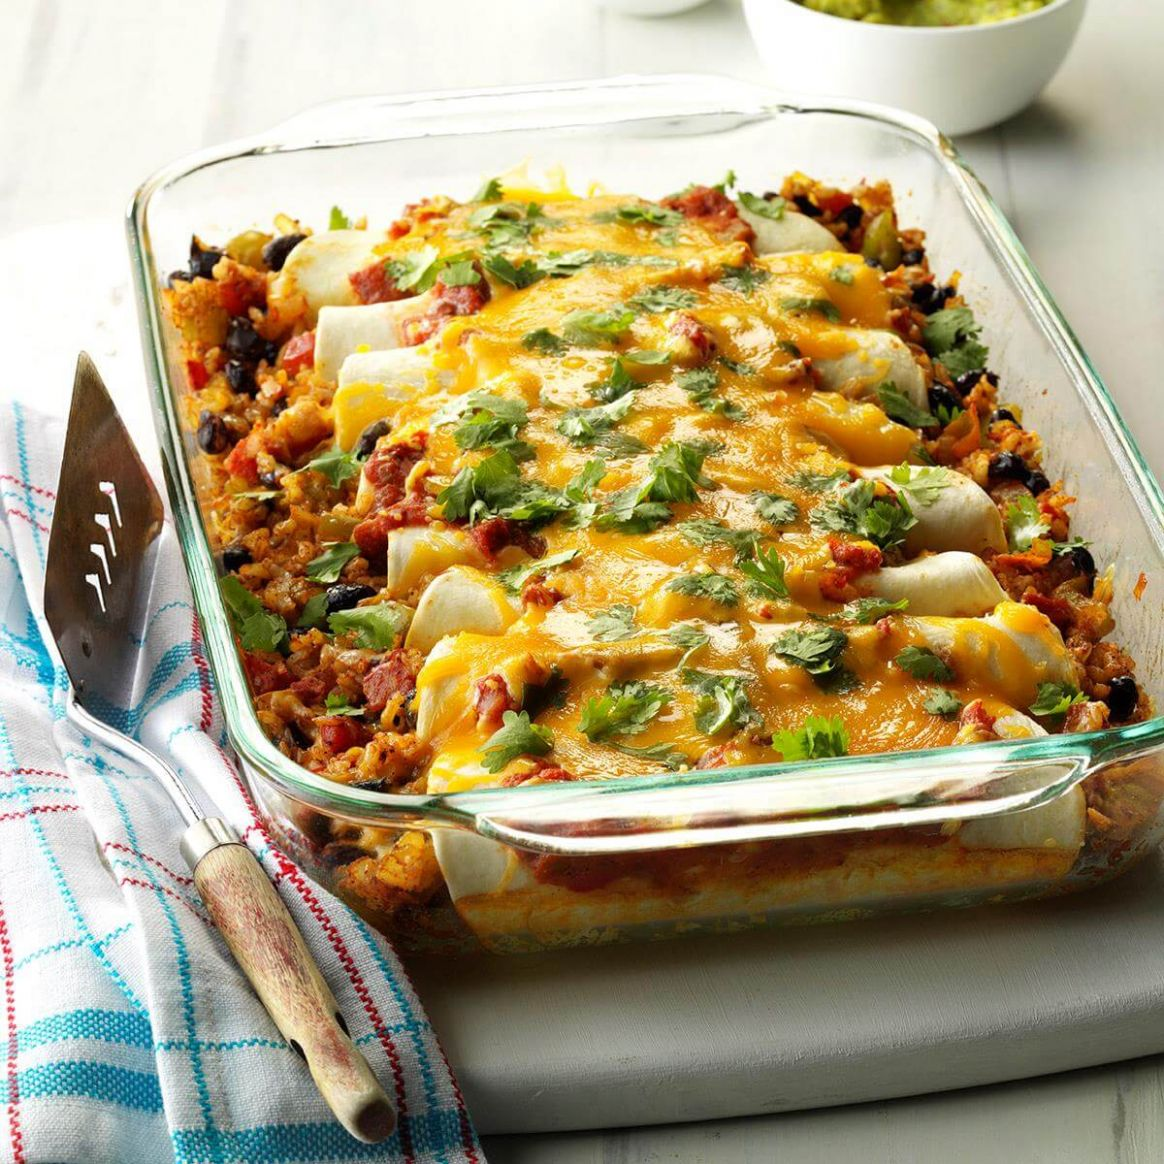 10 Dinner Recipes for Weight Loss   Taste of Home - Weight Loss Quick Recipes